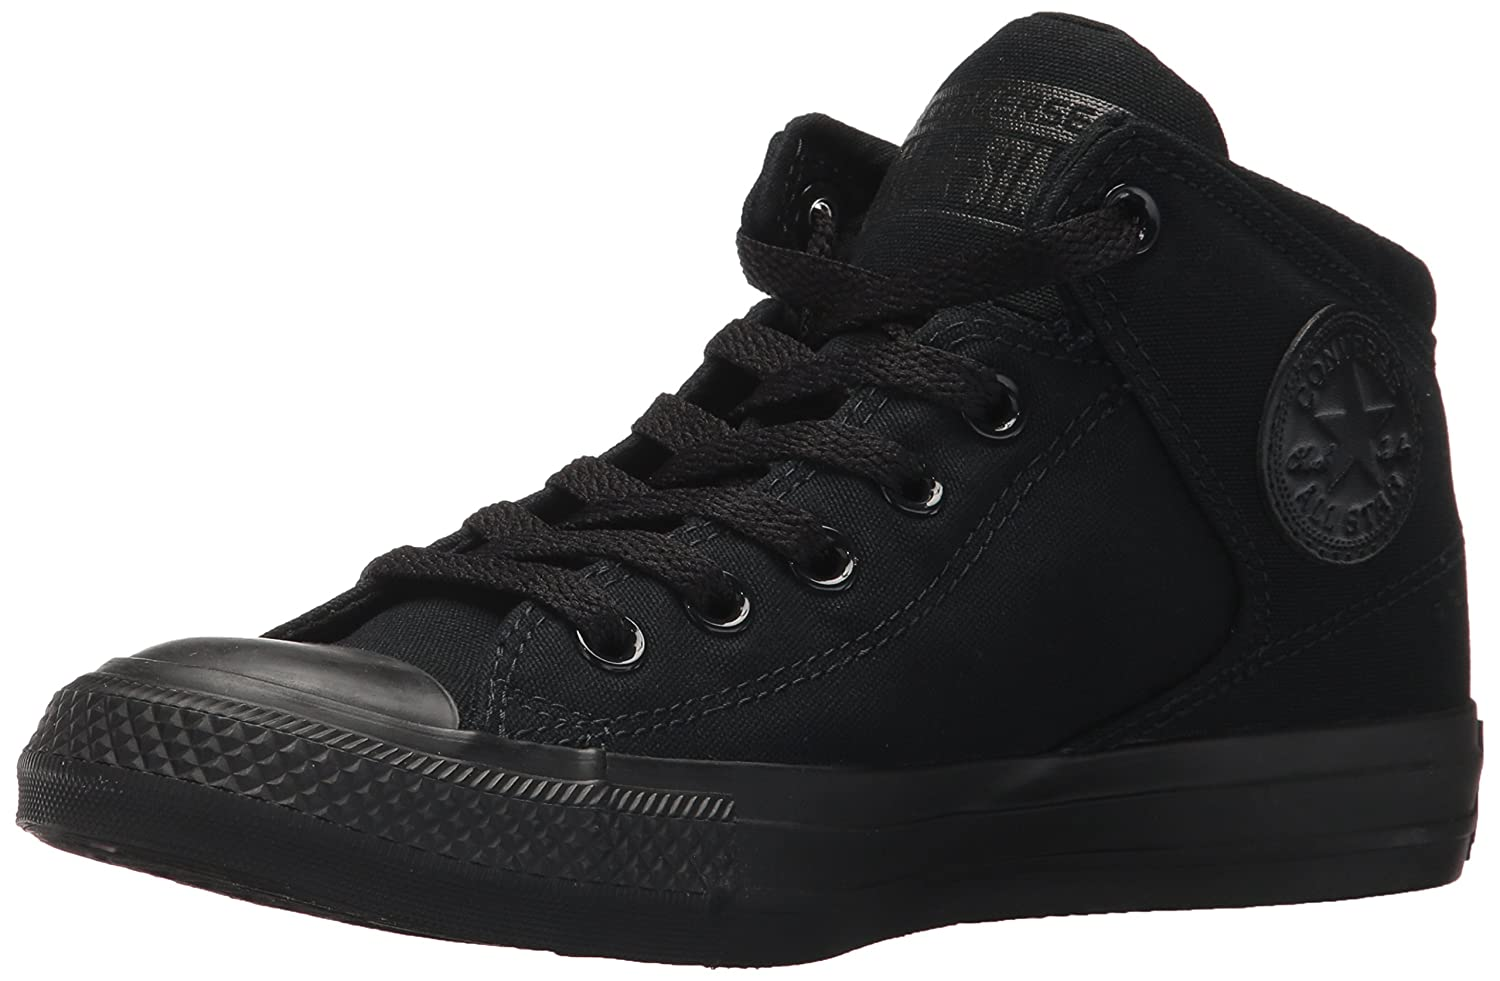 Converse Men's Street Tonal Canvas High Top Sneaker B00QXU3RQ0 7 D(M) US|Black/Black/Black